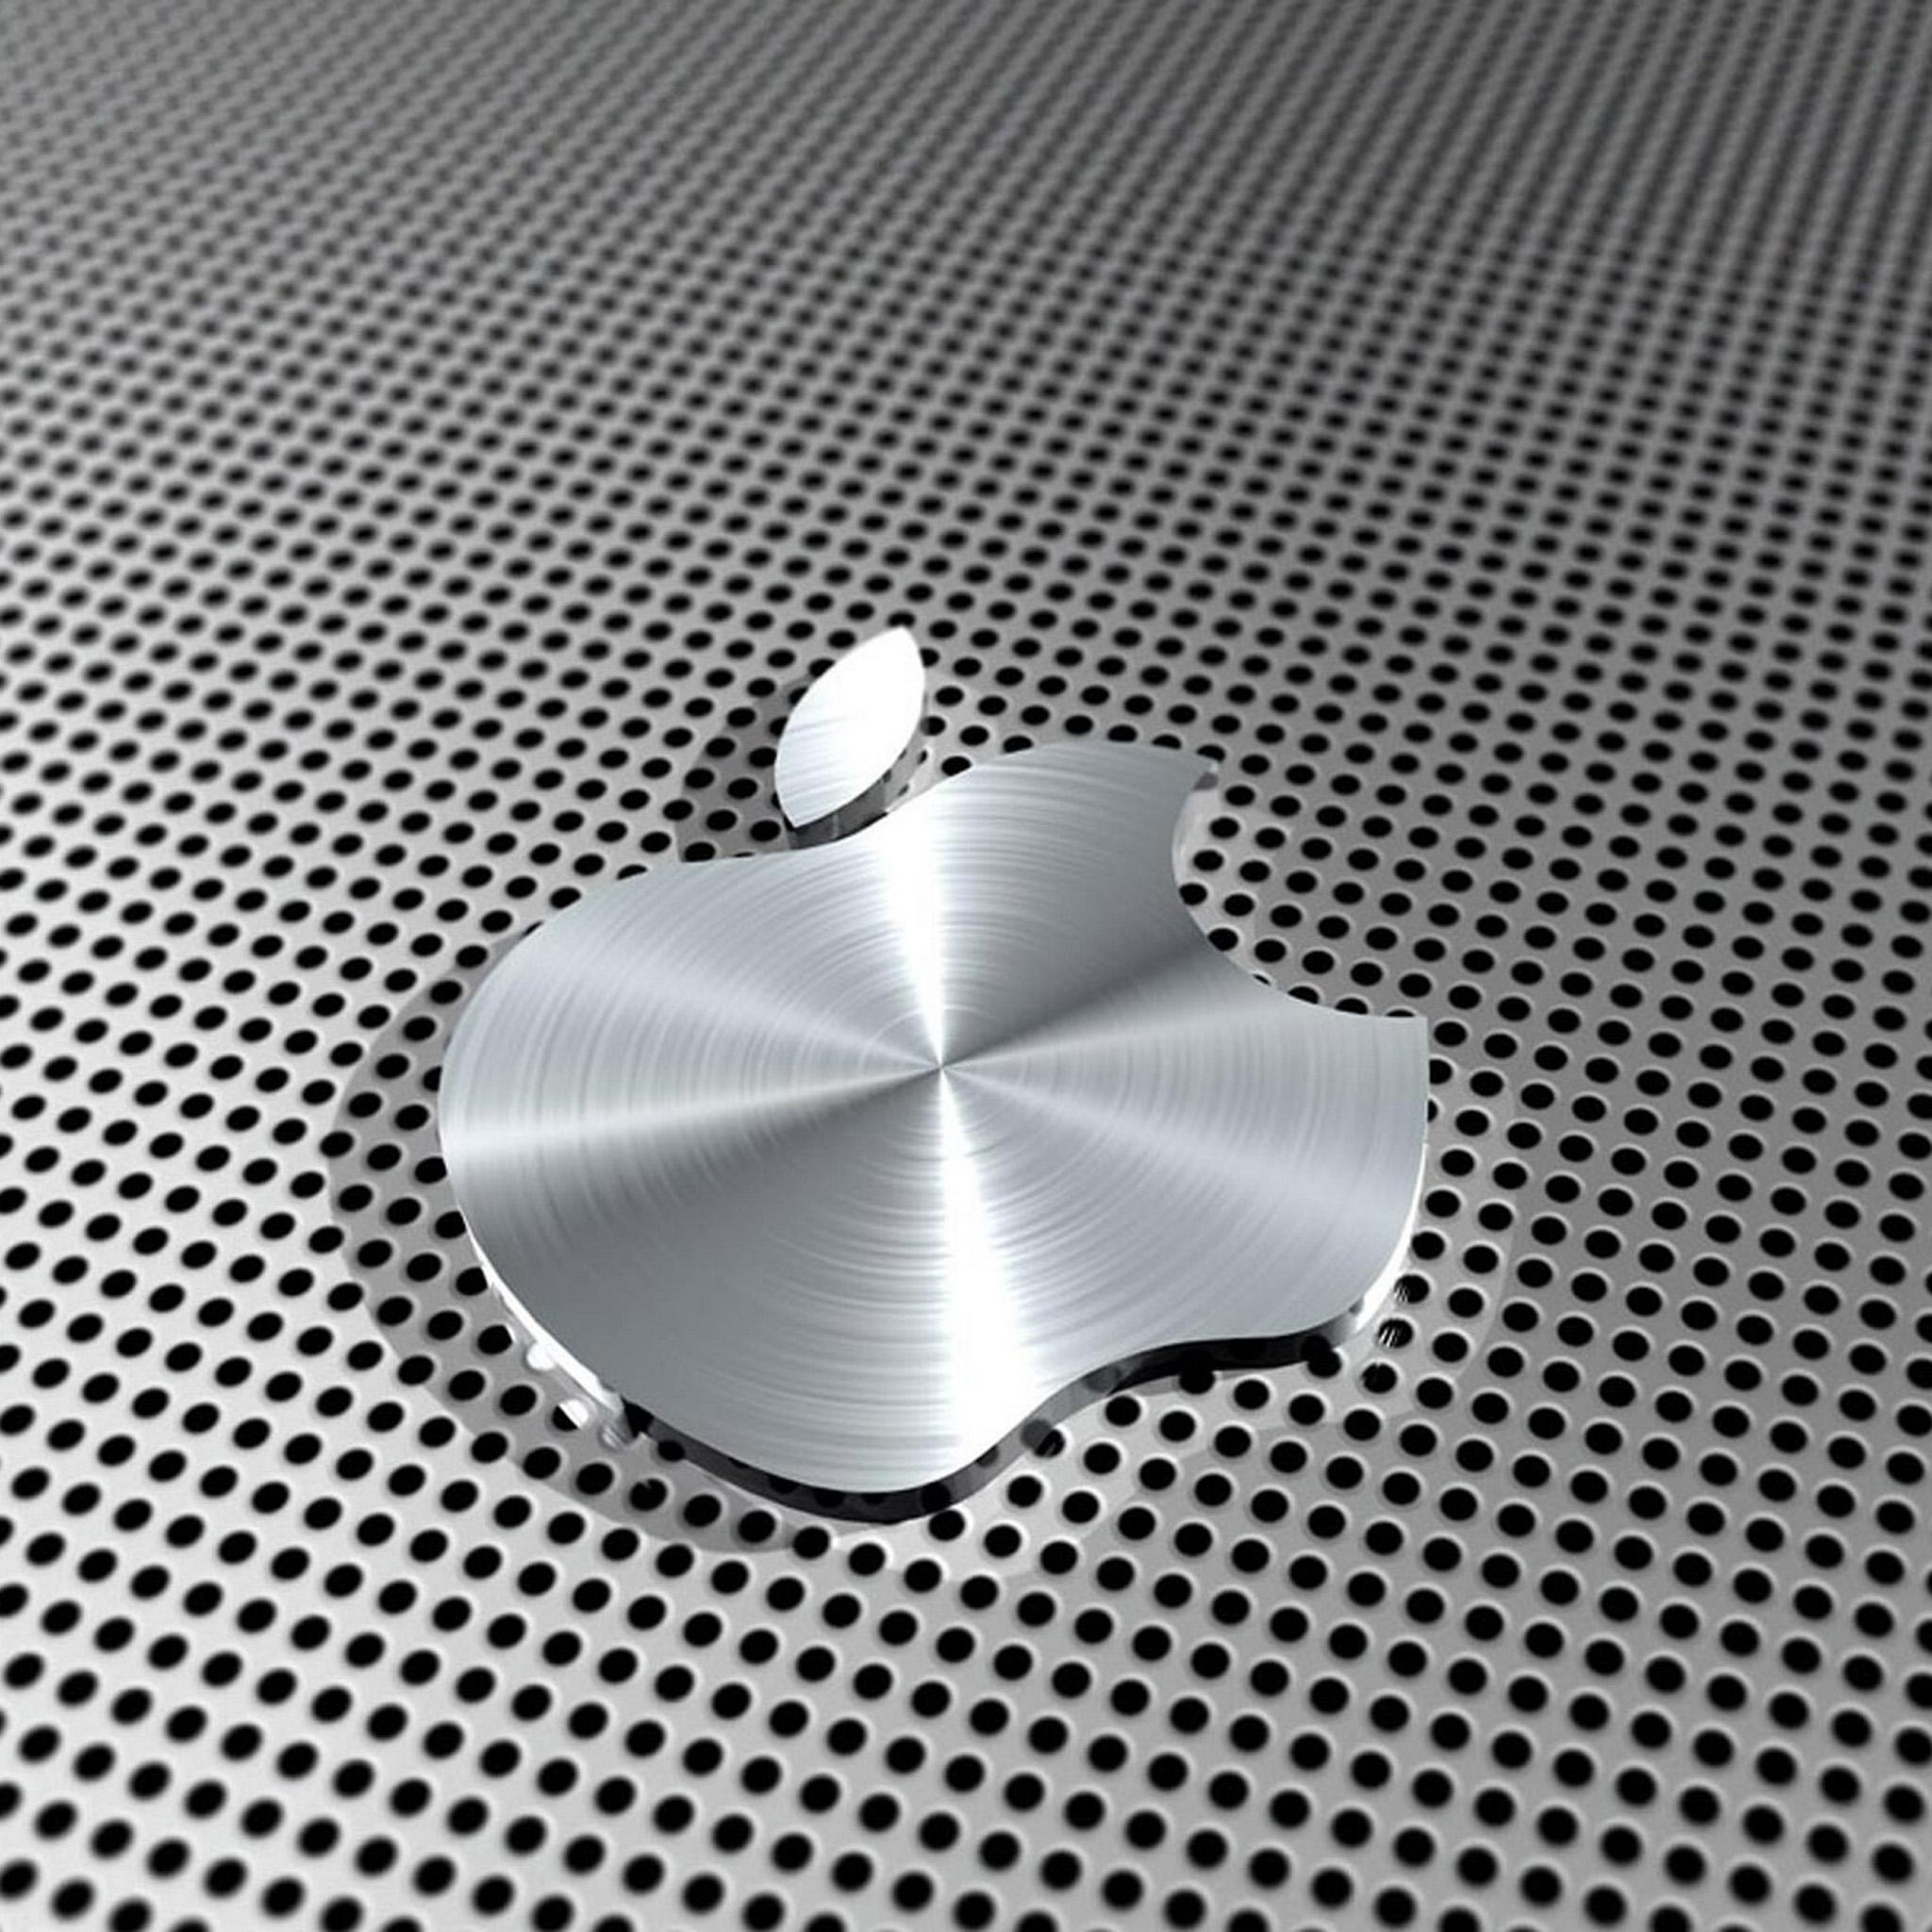 Ipad retina hd wallpaper apple logo in steel ipad ipad for Ecran pc retina